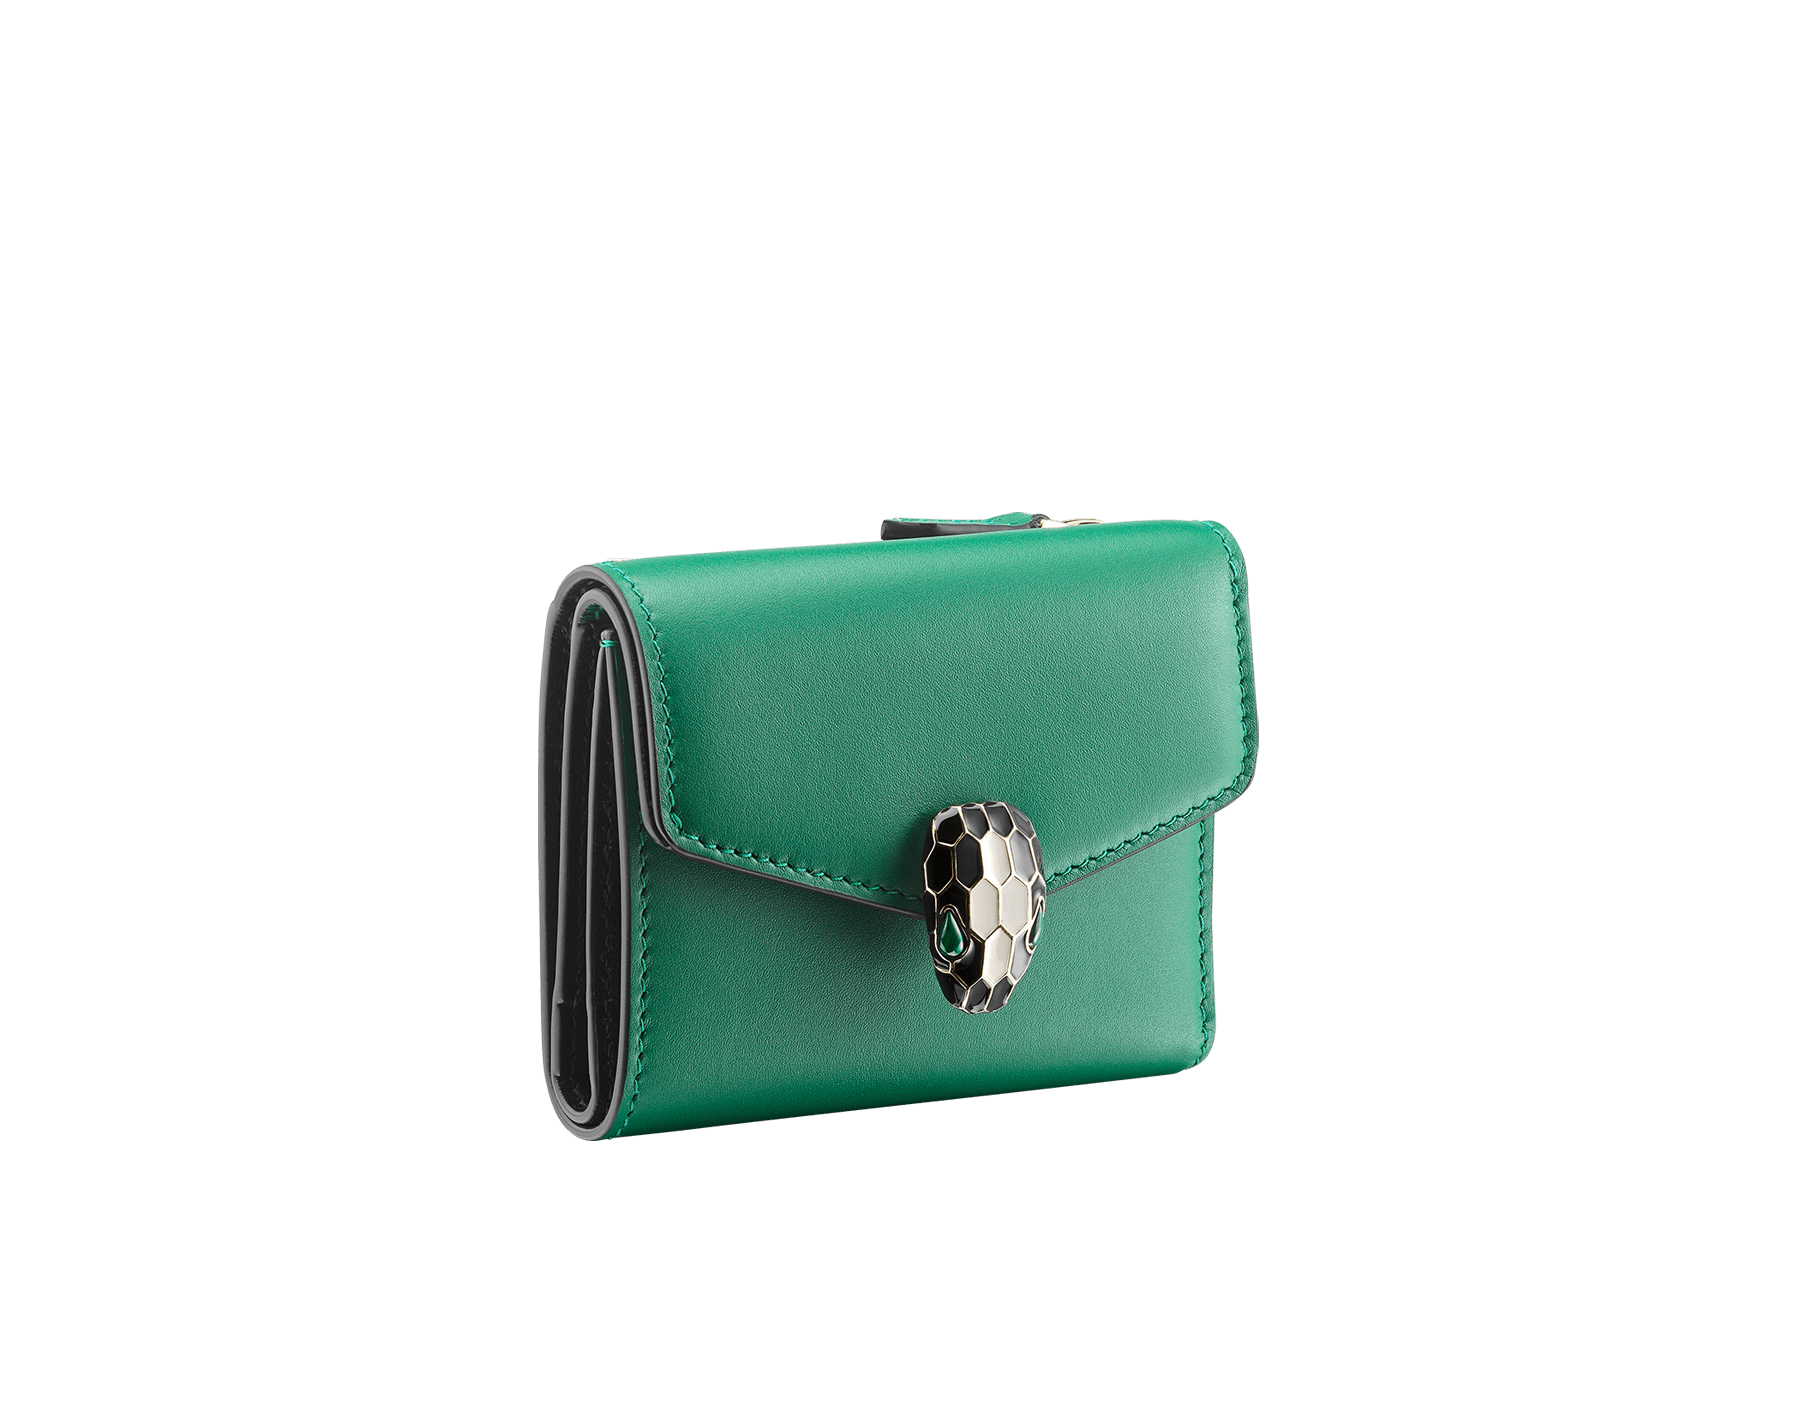 Serpenti Forever compact wallet in daisy topaz calf leather and white agate goatskin. Iconic light gold plated brass snake head stud closure in white agate and daisy topaz enamel, with black onyx eyes. SEA-SLIMCOMPACT-CLa image 2